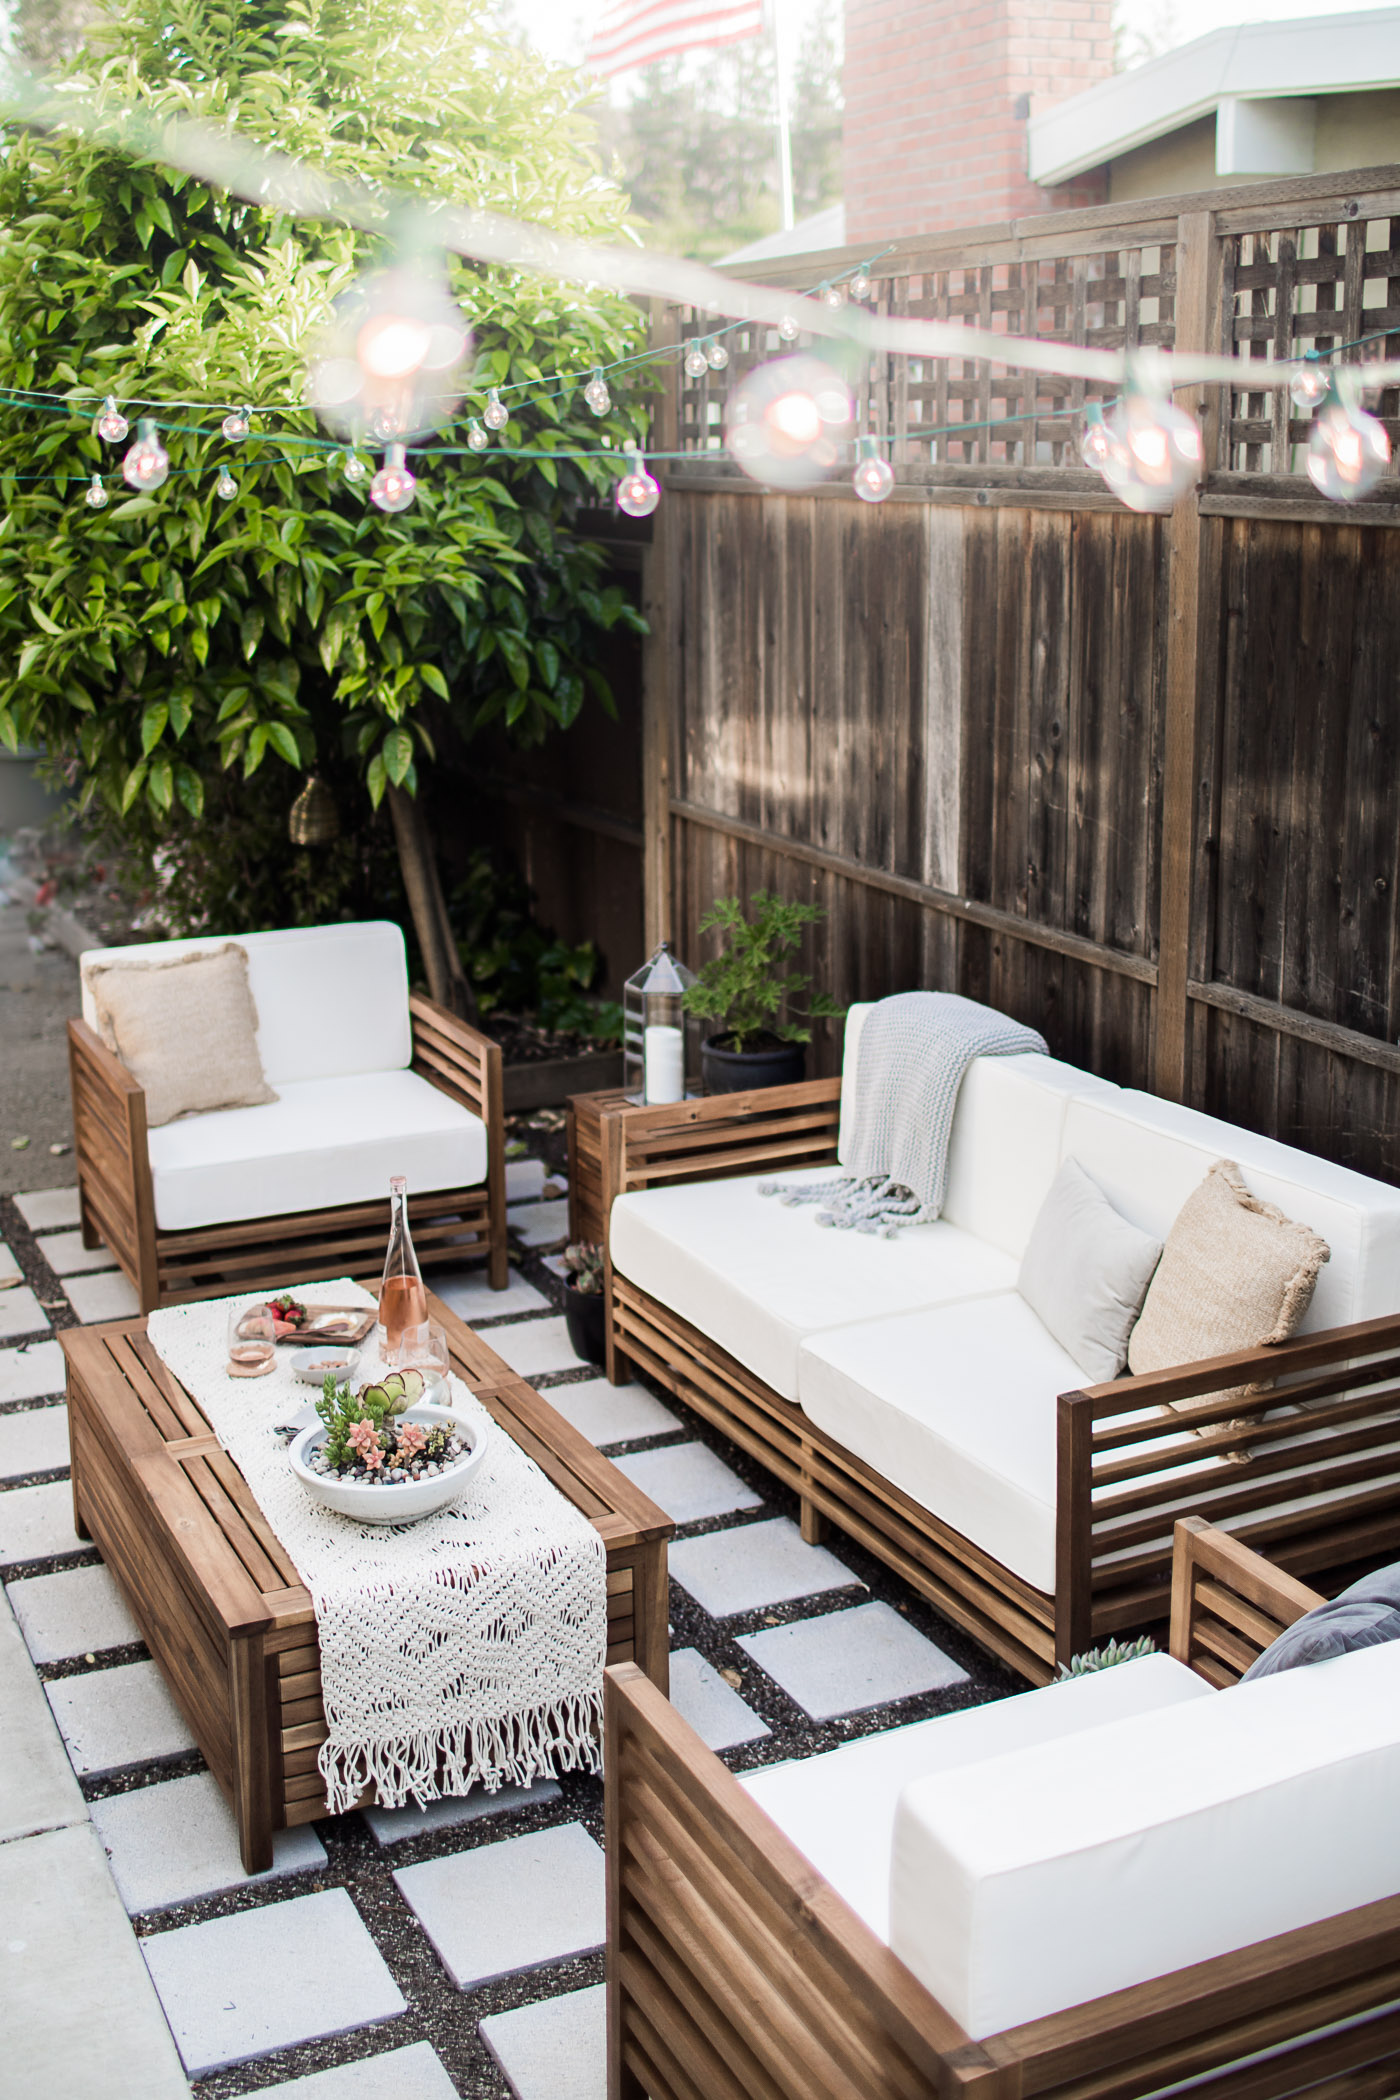 5 easy tips for creating the perfect indoor outdoor living space by Jessica Doll, a California-based travel, life, and style blogger.